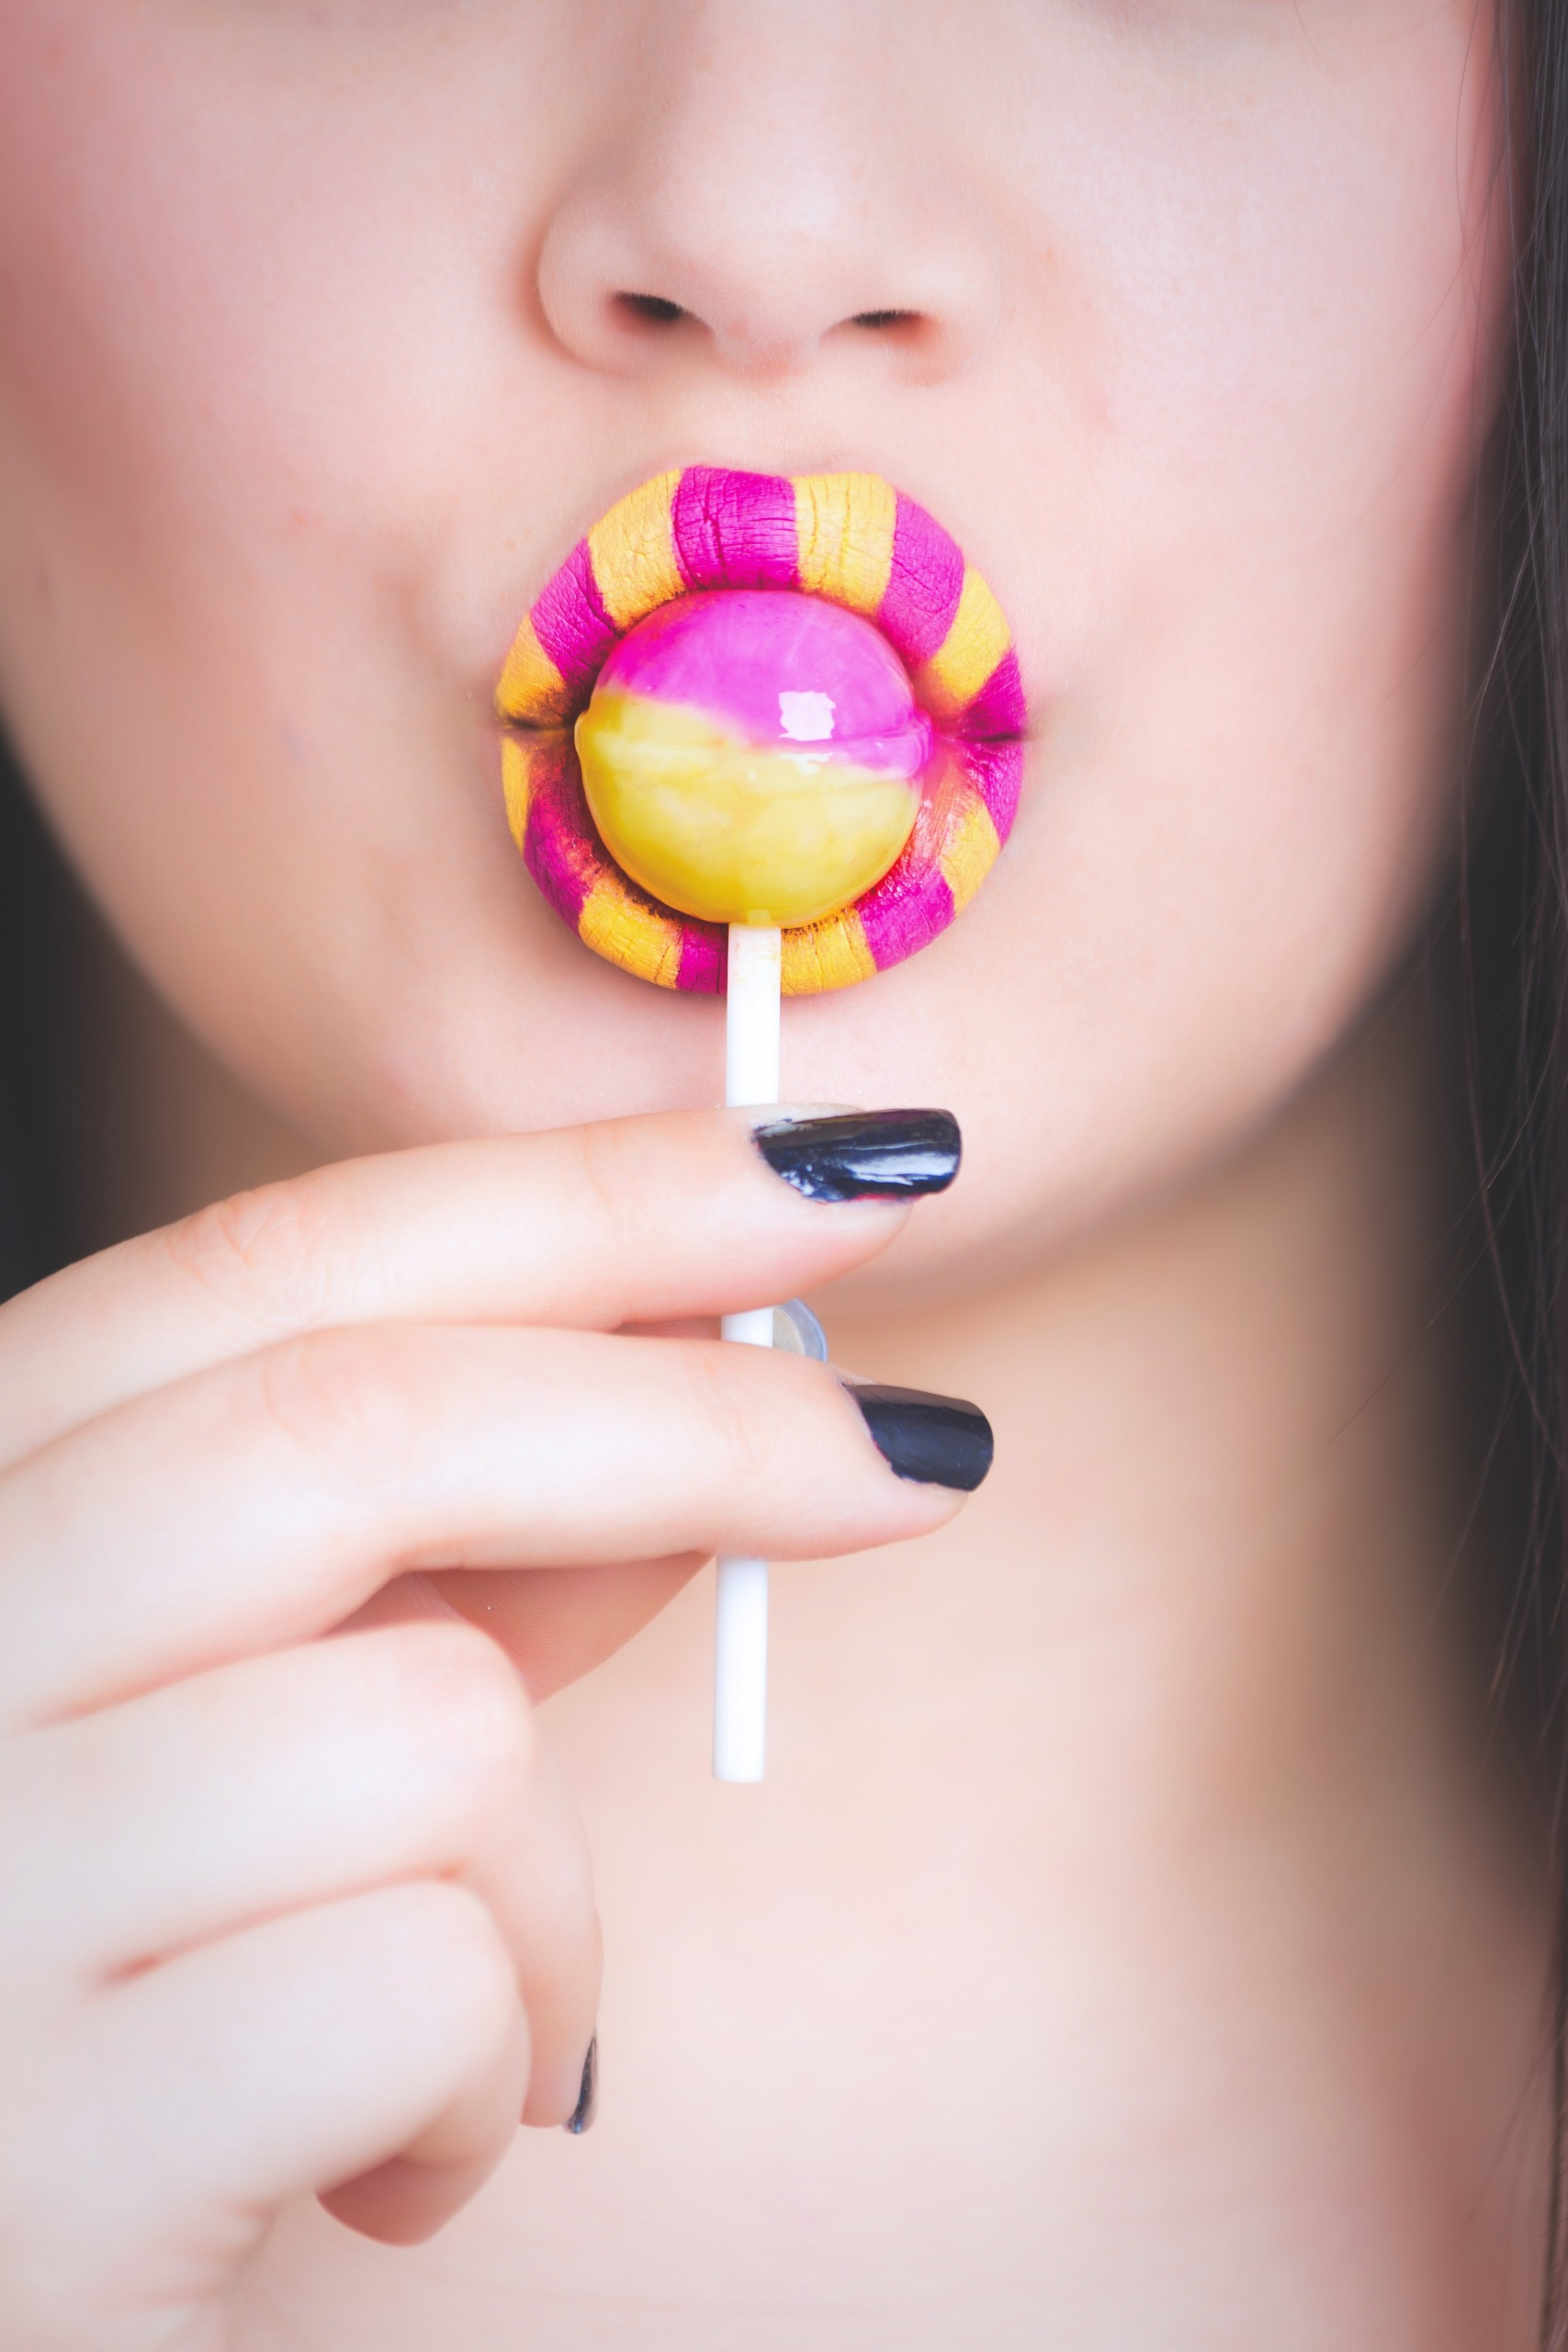 Woman Eating Pink and Yellow Lollipop